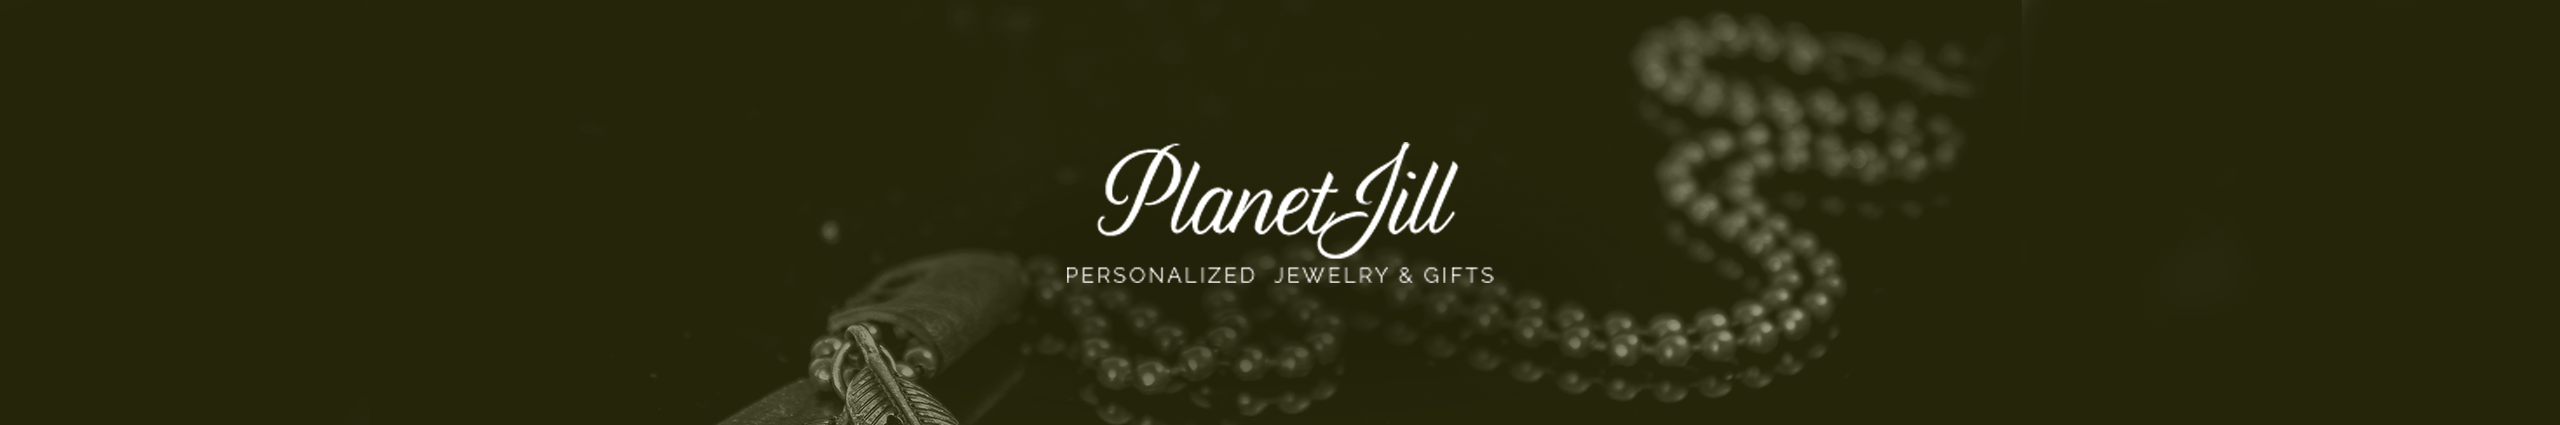 PlanetJill Jewelry & Gifts